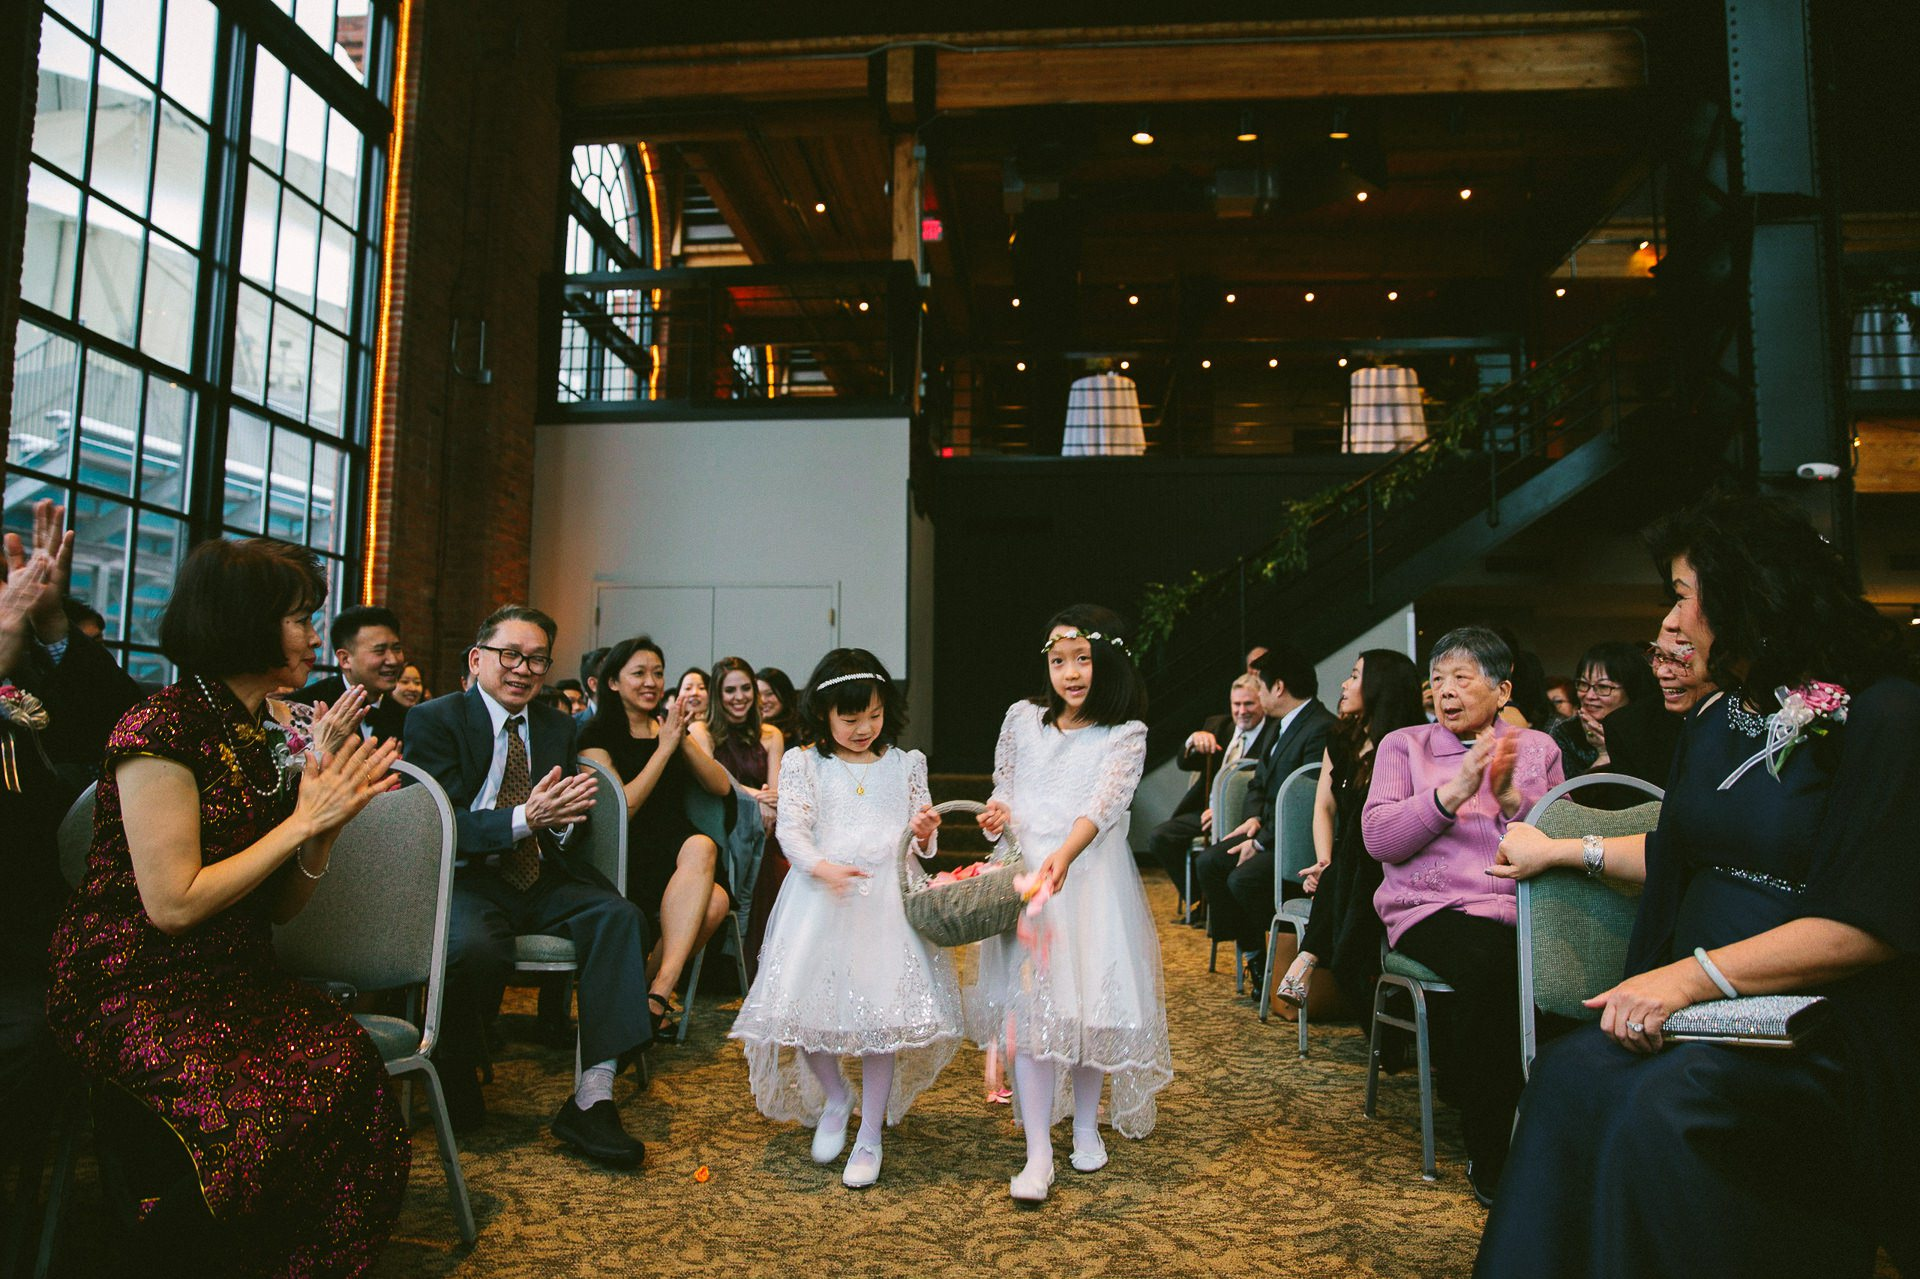 Windows on the River Winter Wedding Photographer in Cleveland 68.jpg